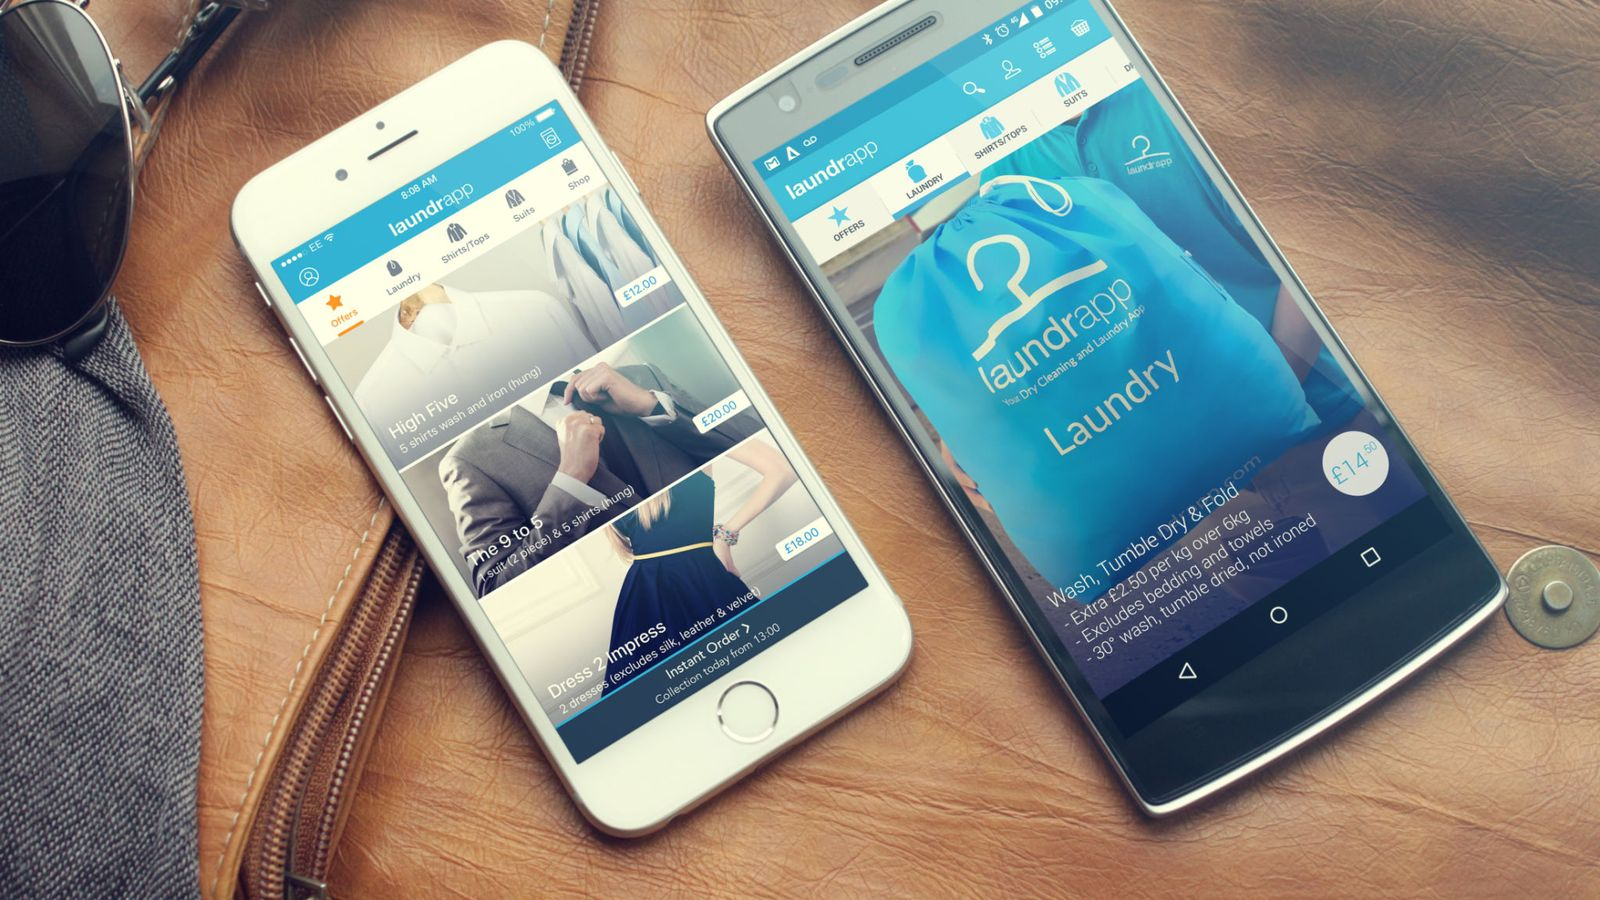 Laundrapp and Zipjet combine to form largest on demand laundry service